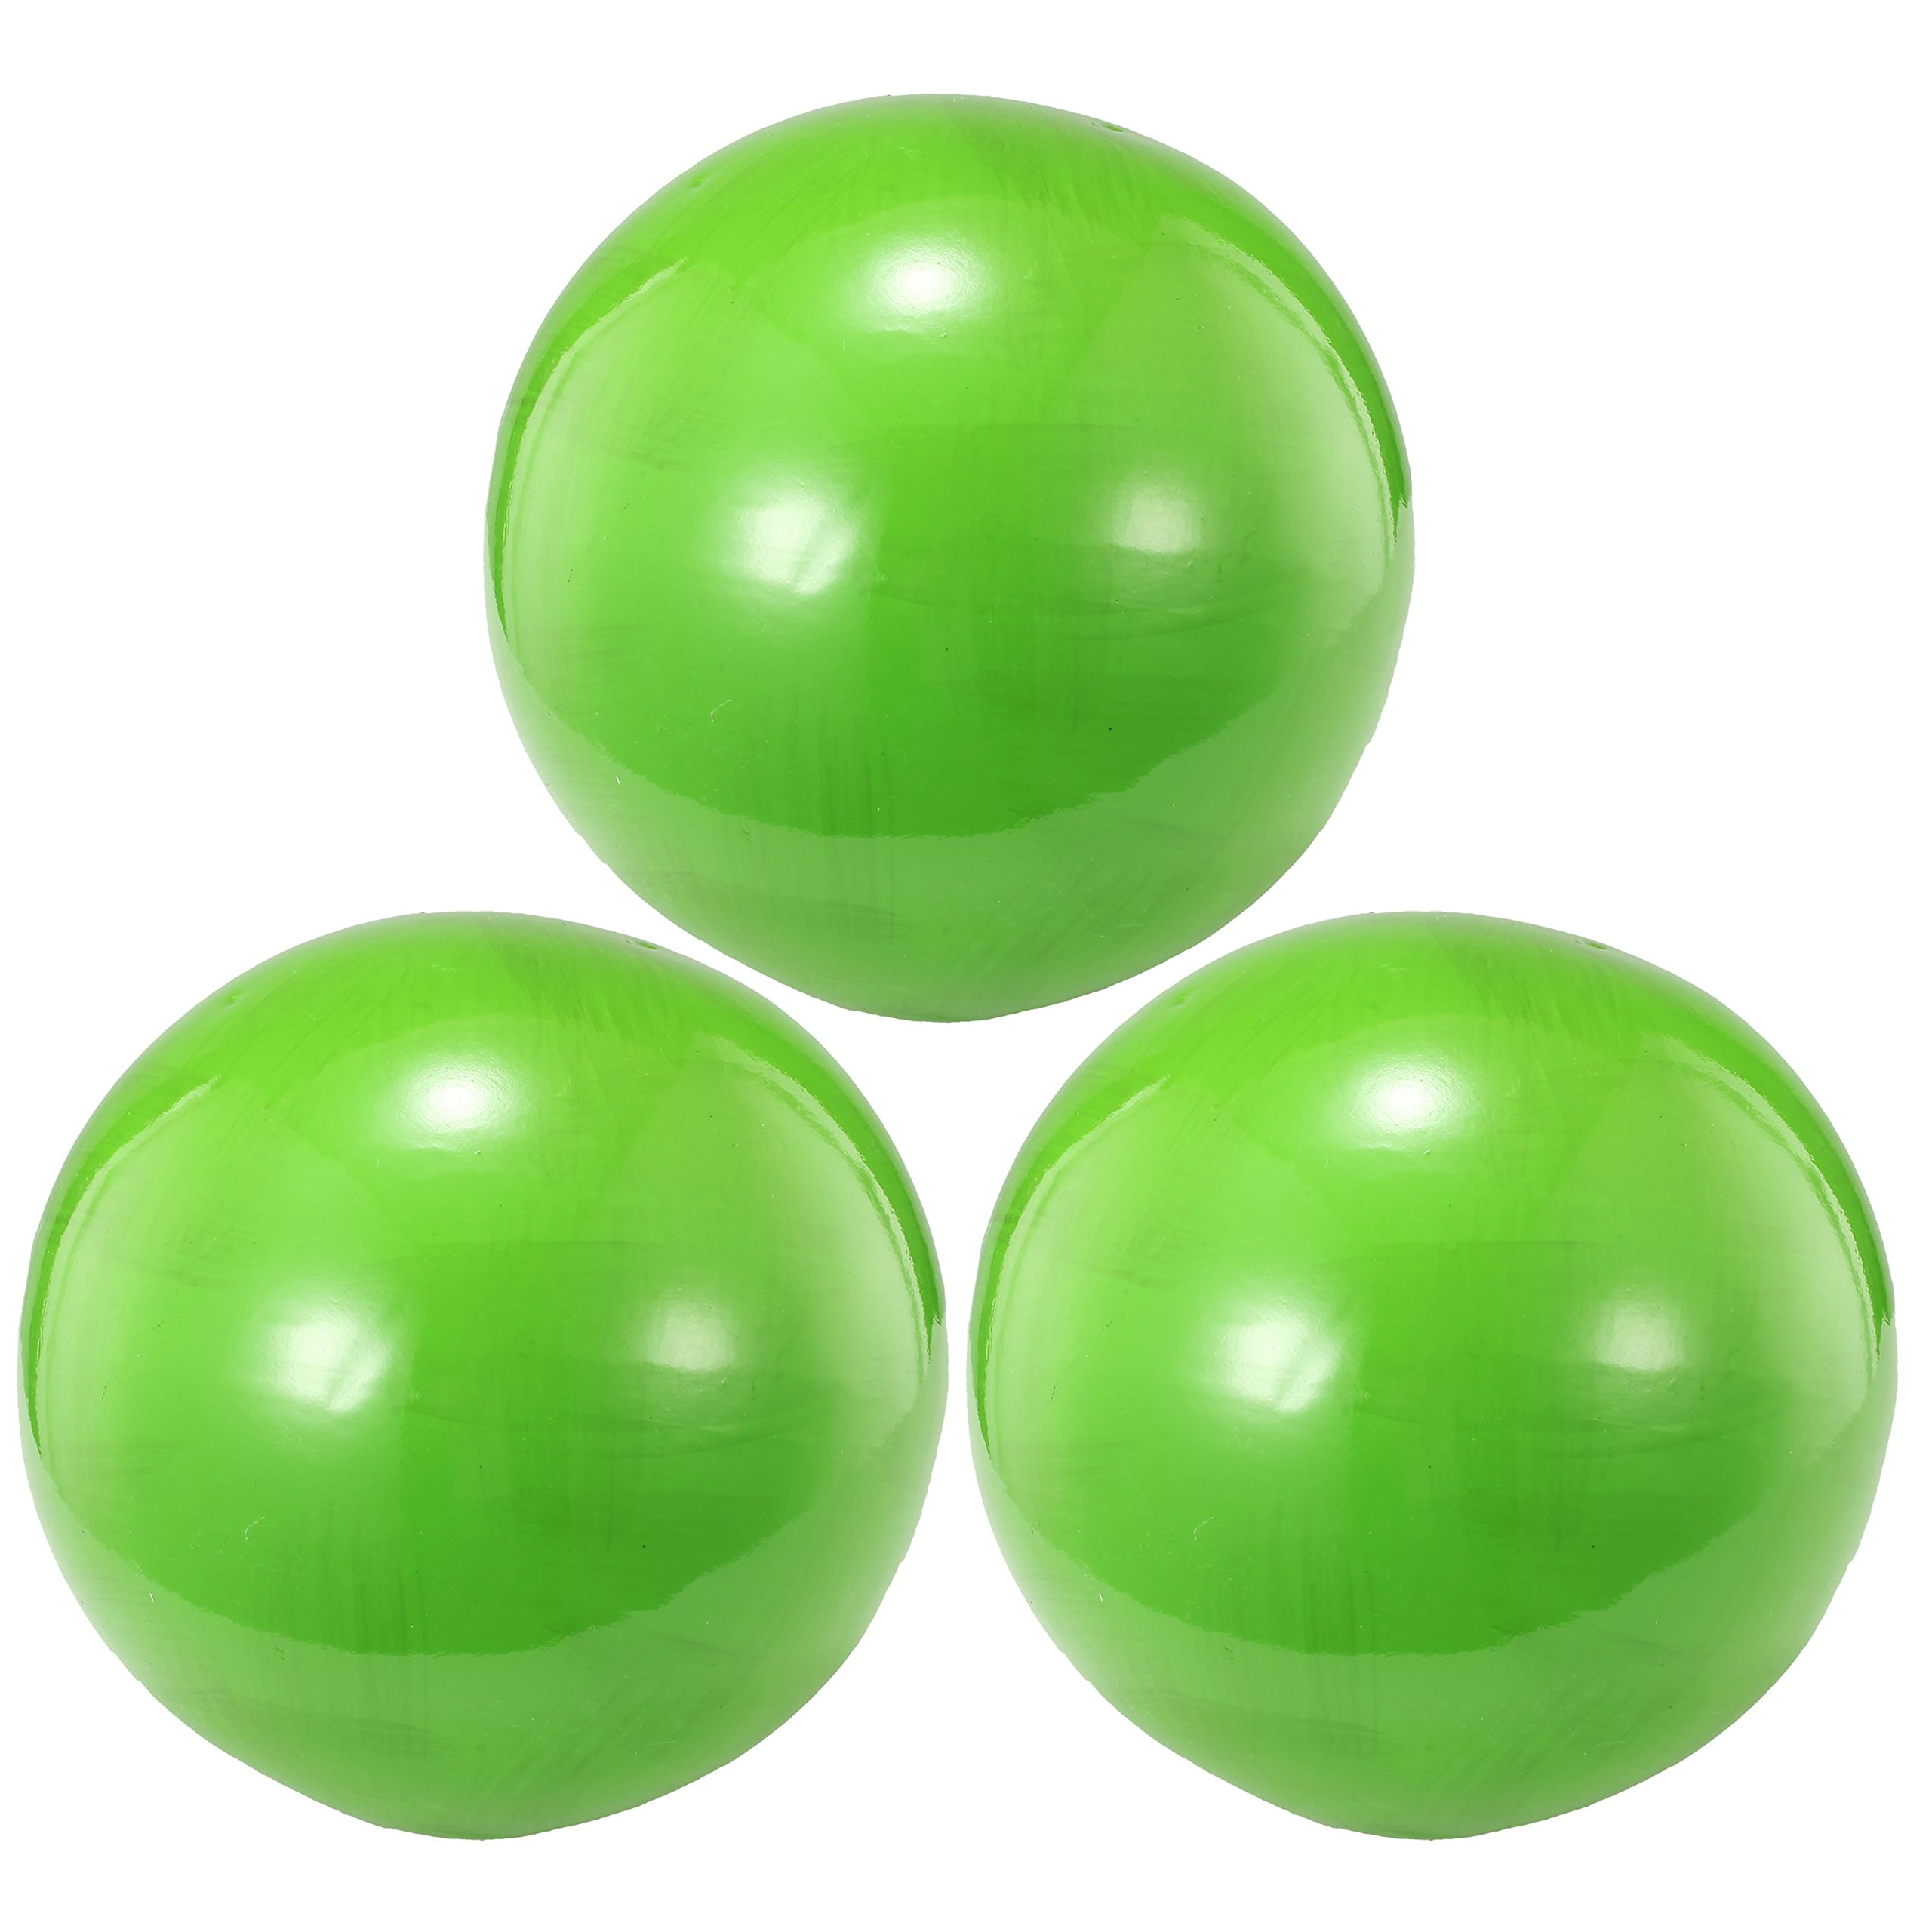 A & B Home Inc. Decorative Lime Green 4-inch x 4-inch Balls (Set of 3) by A & B Home Inc.